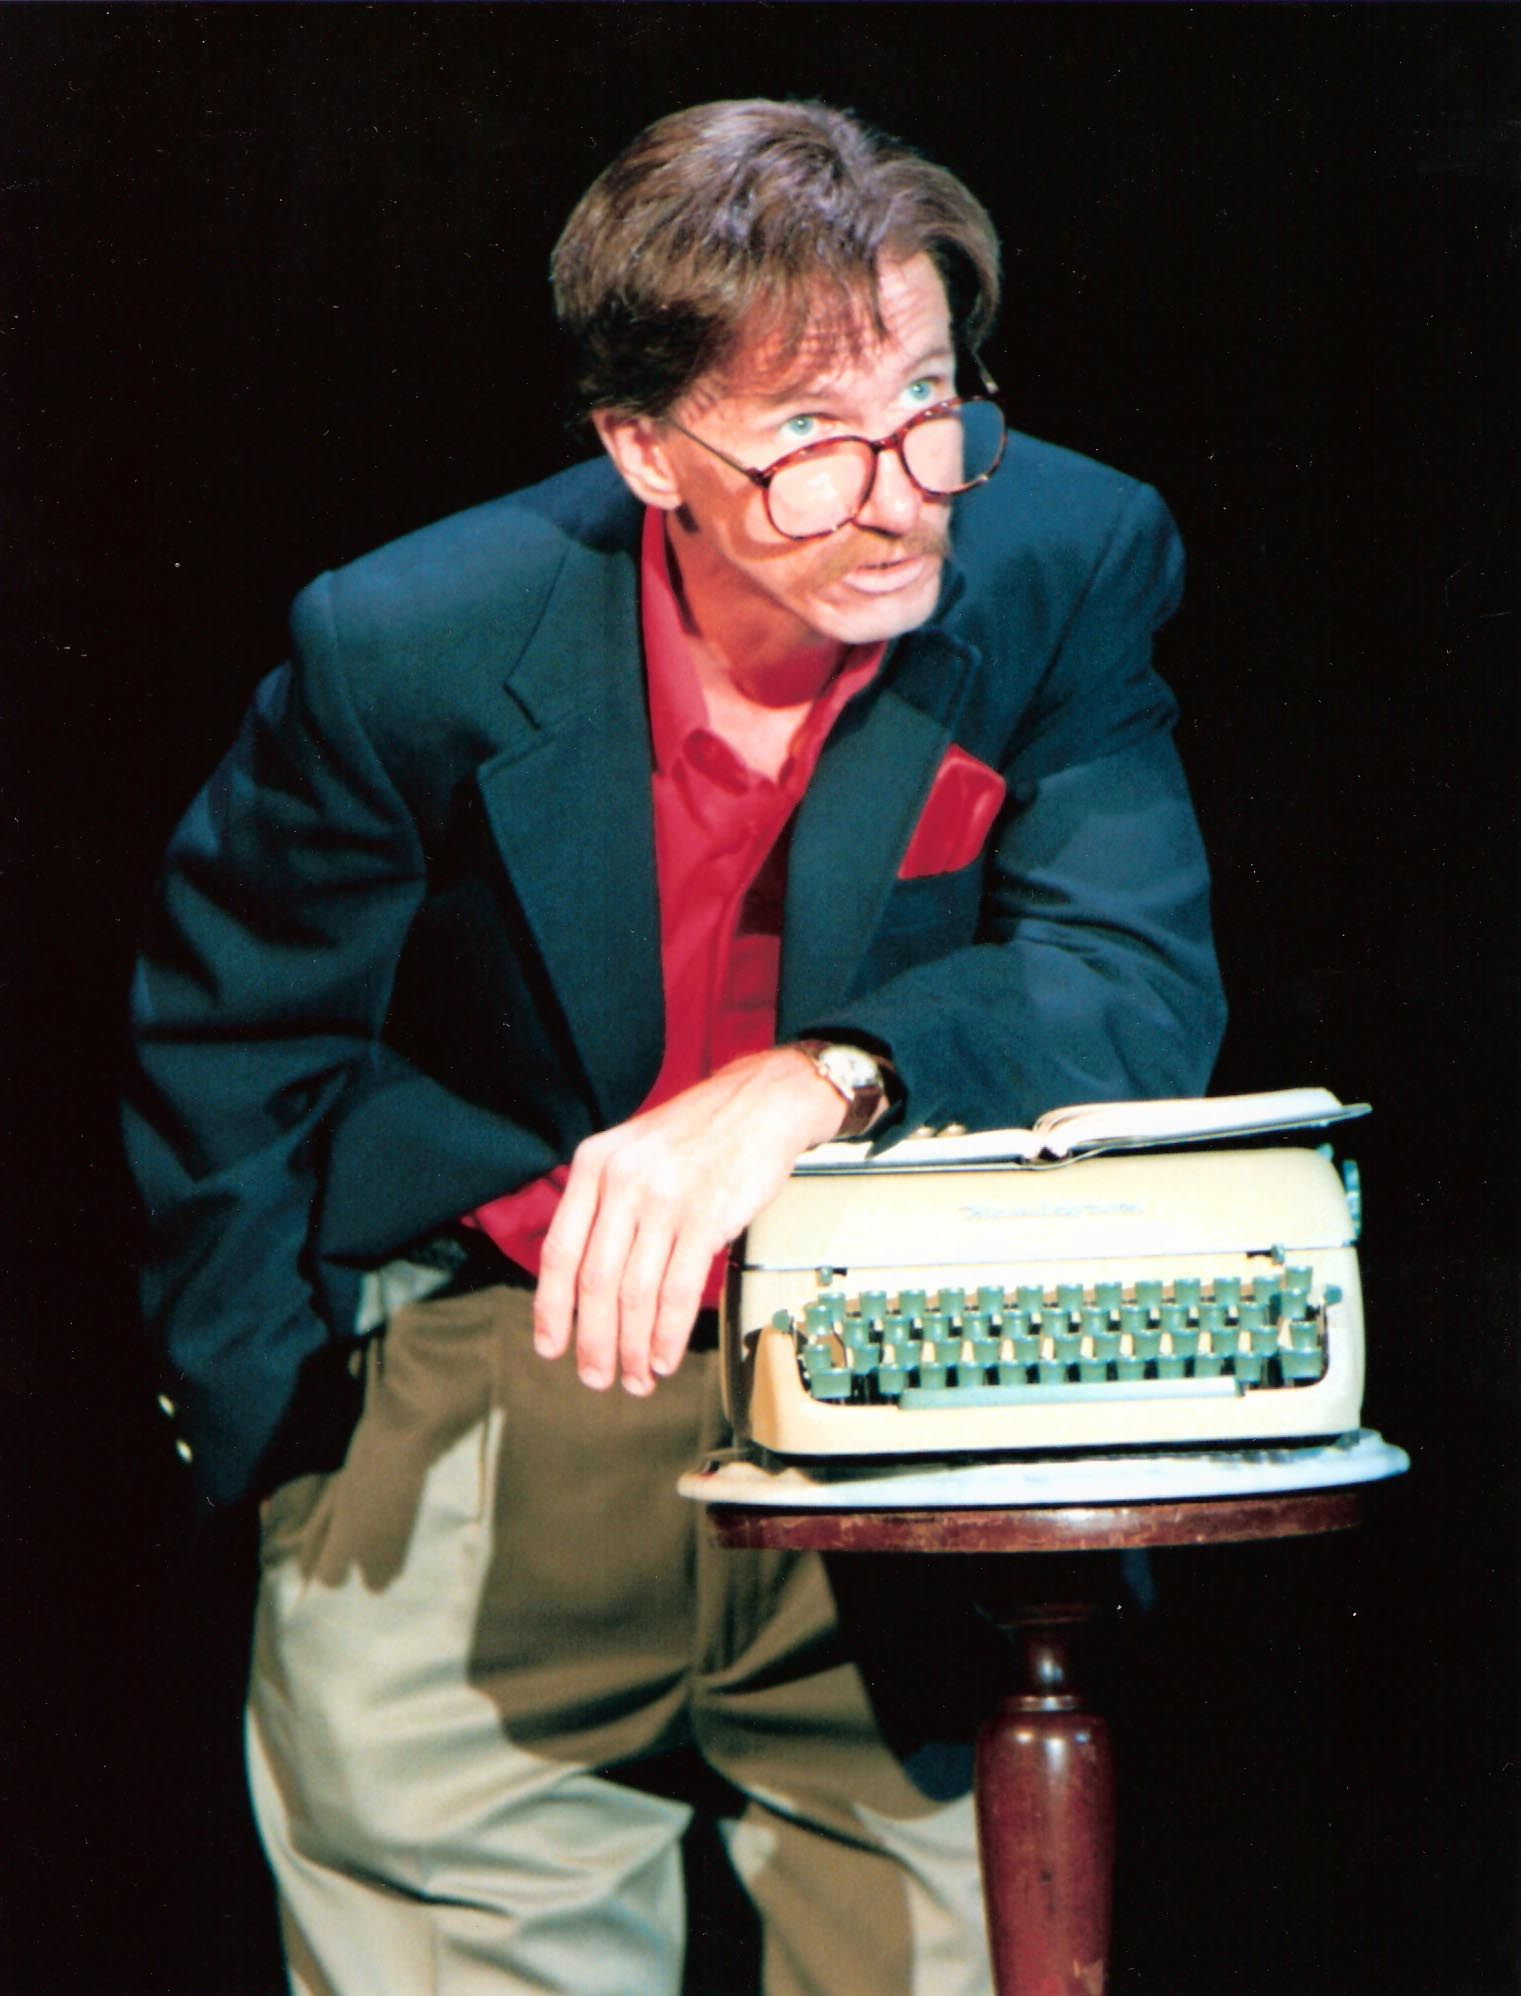 Tribute to Lewis Grizzard, starring Bill Oberst, Jr.